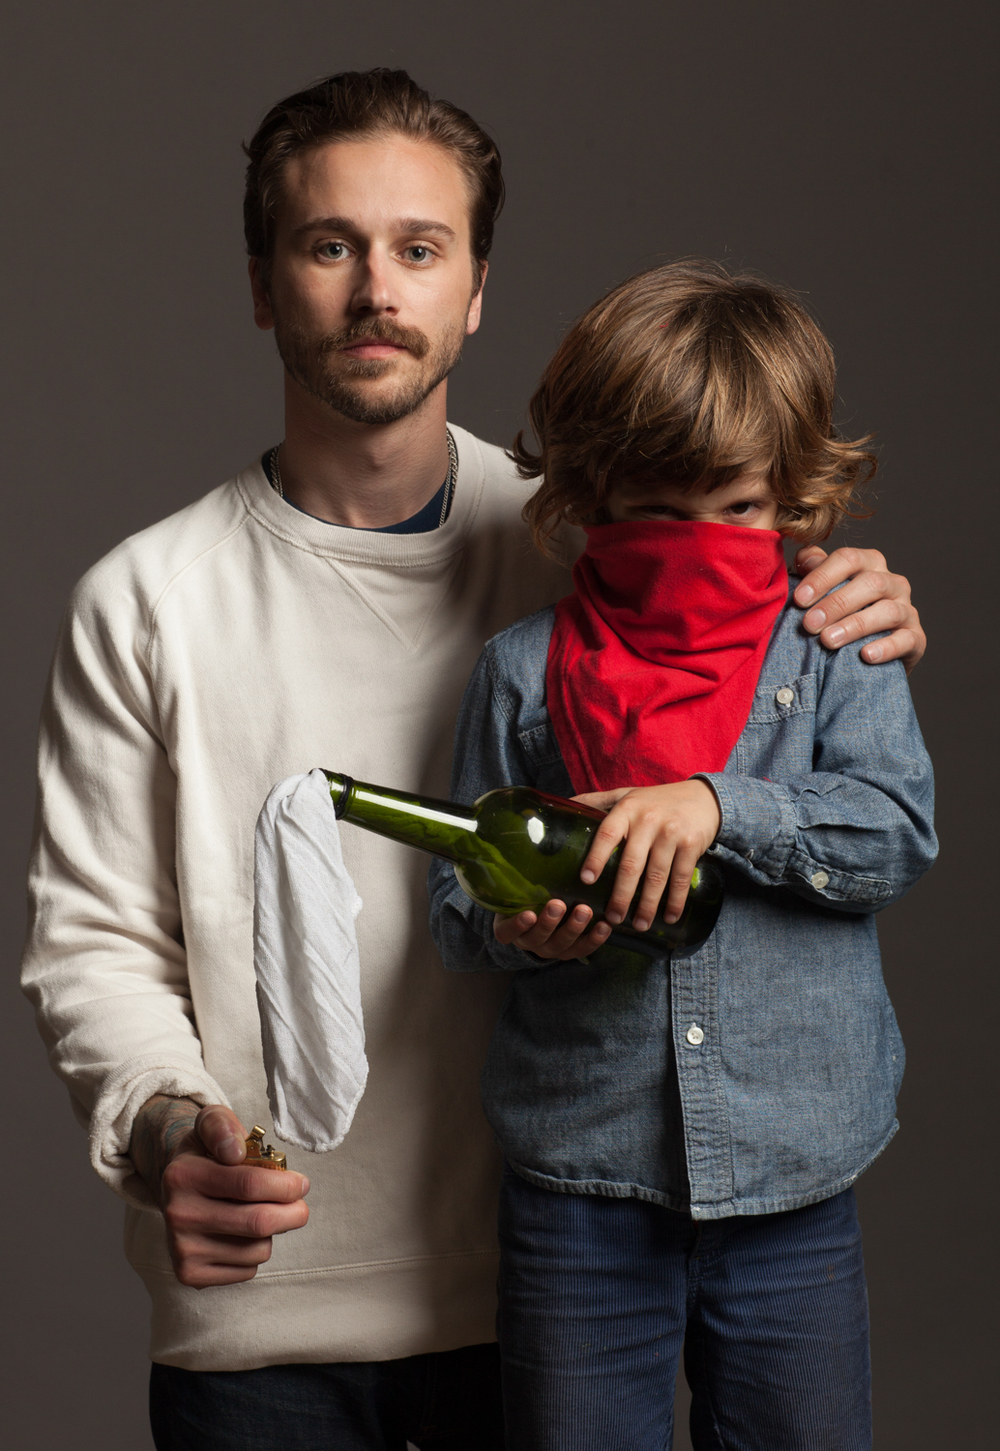 John Gourley of Portugal. The Man